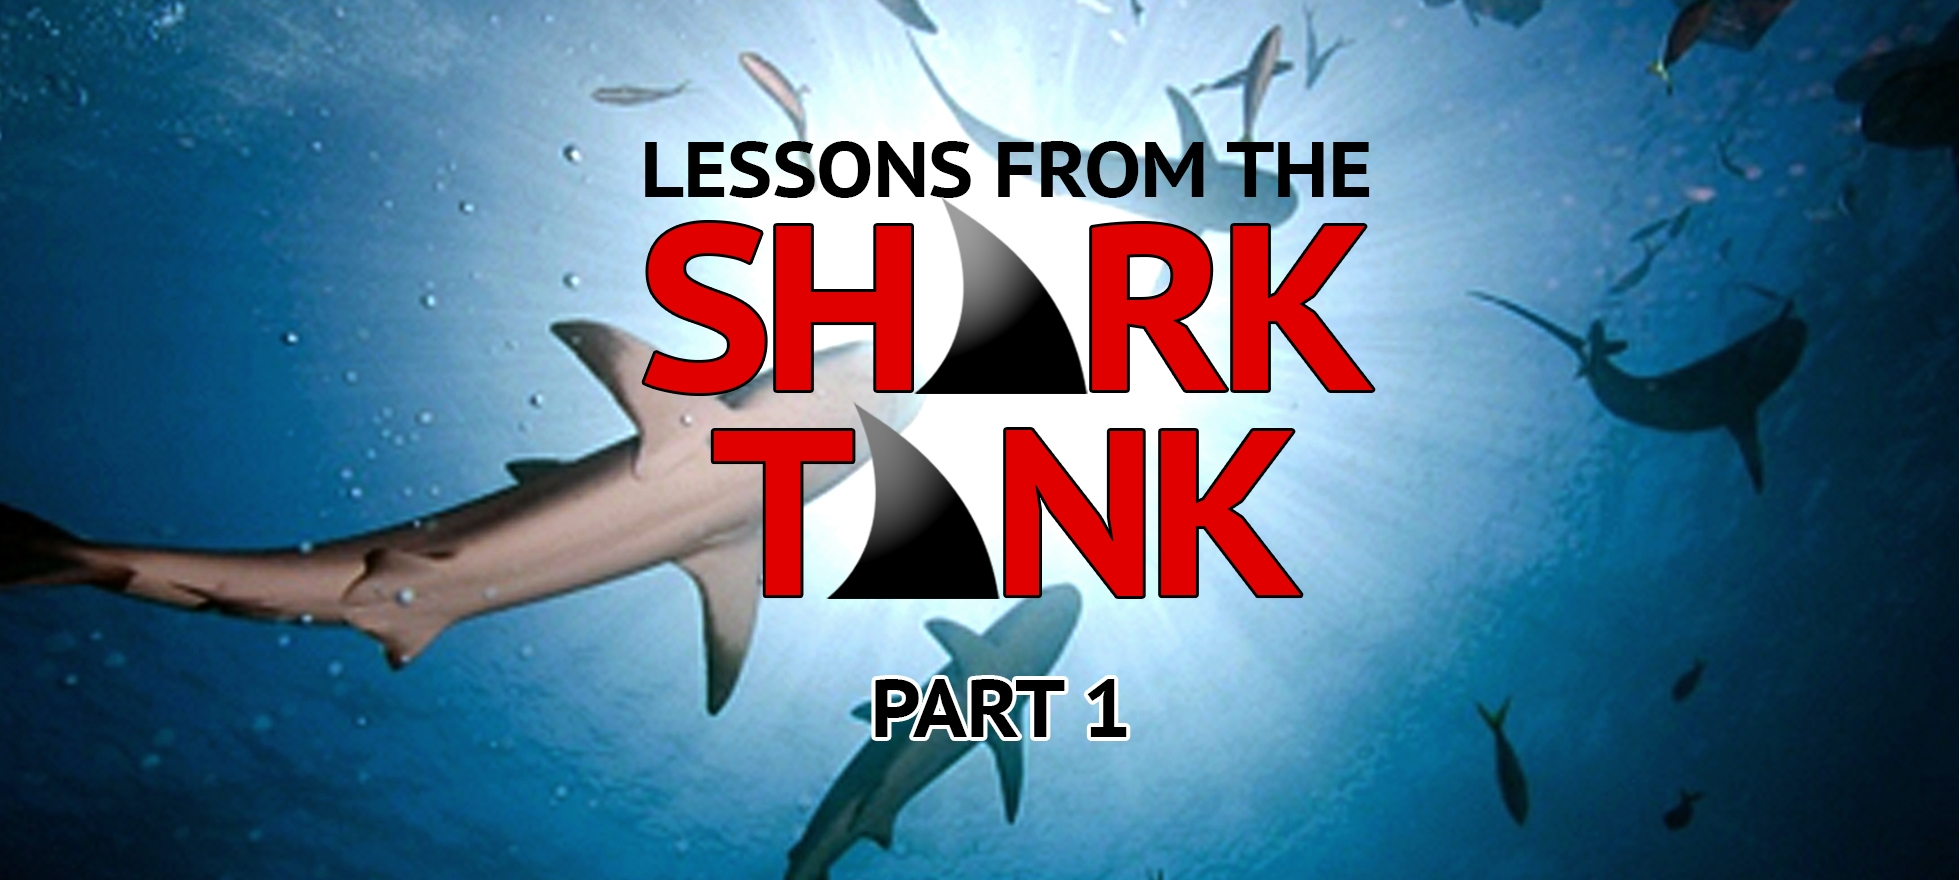 Lessons From the Shark Tank #1